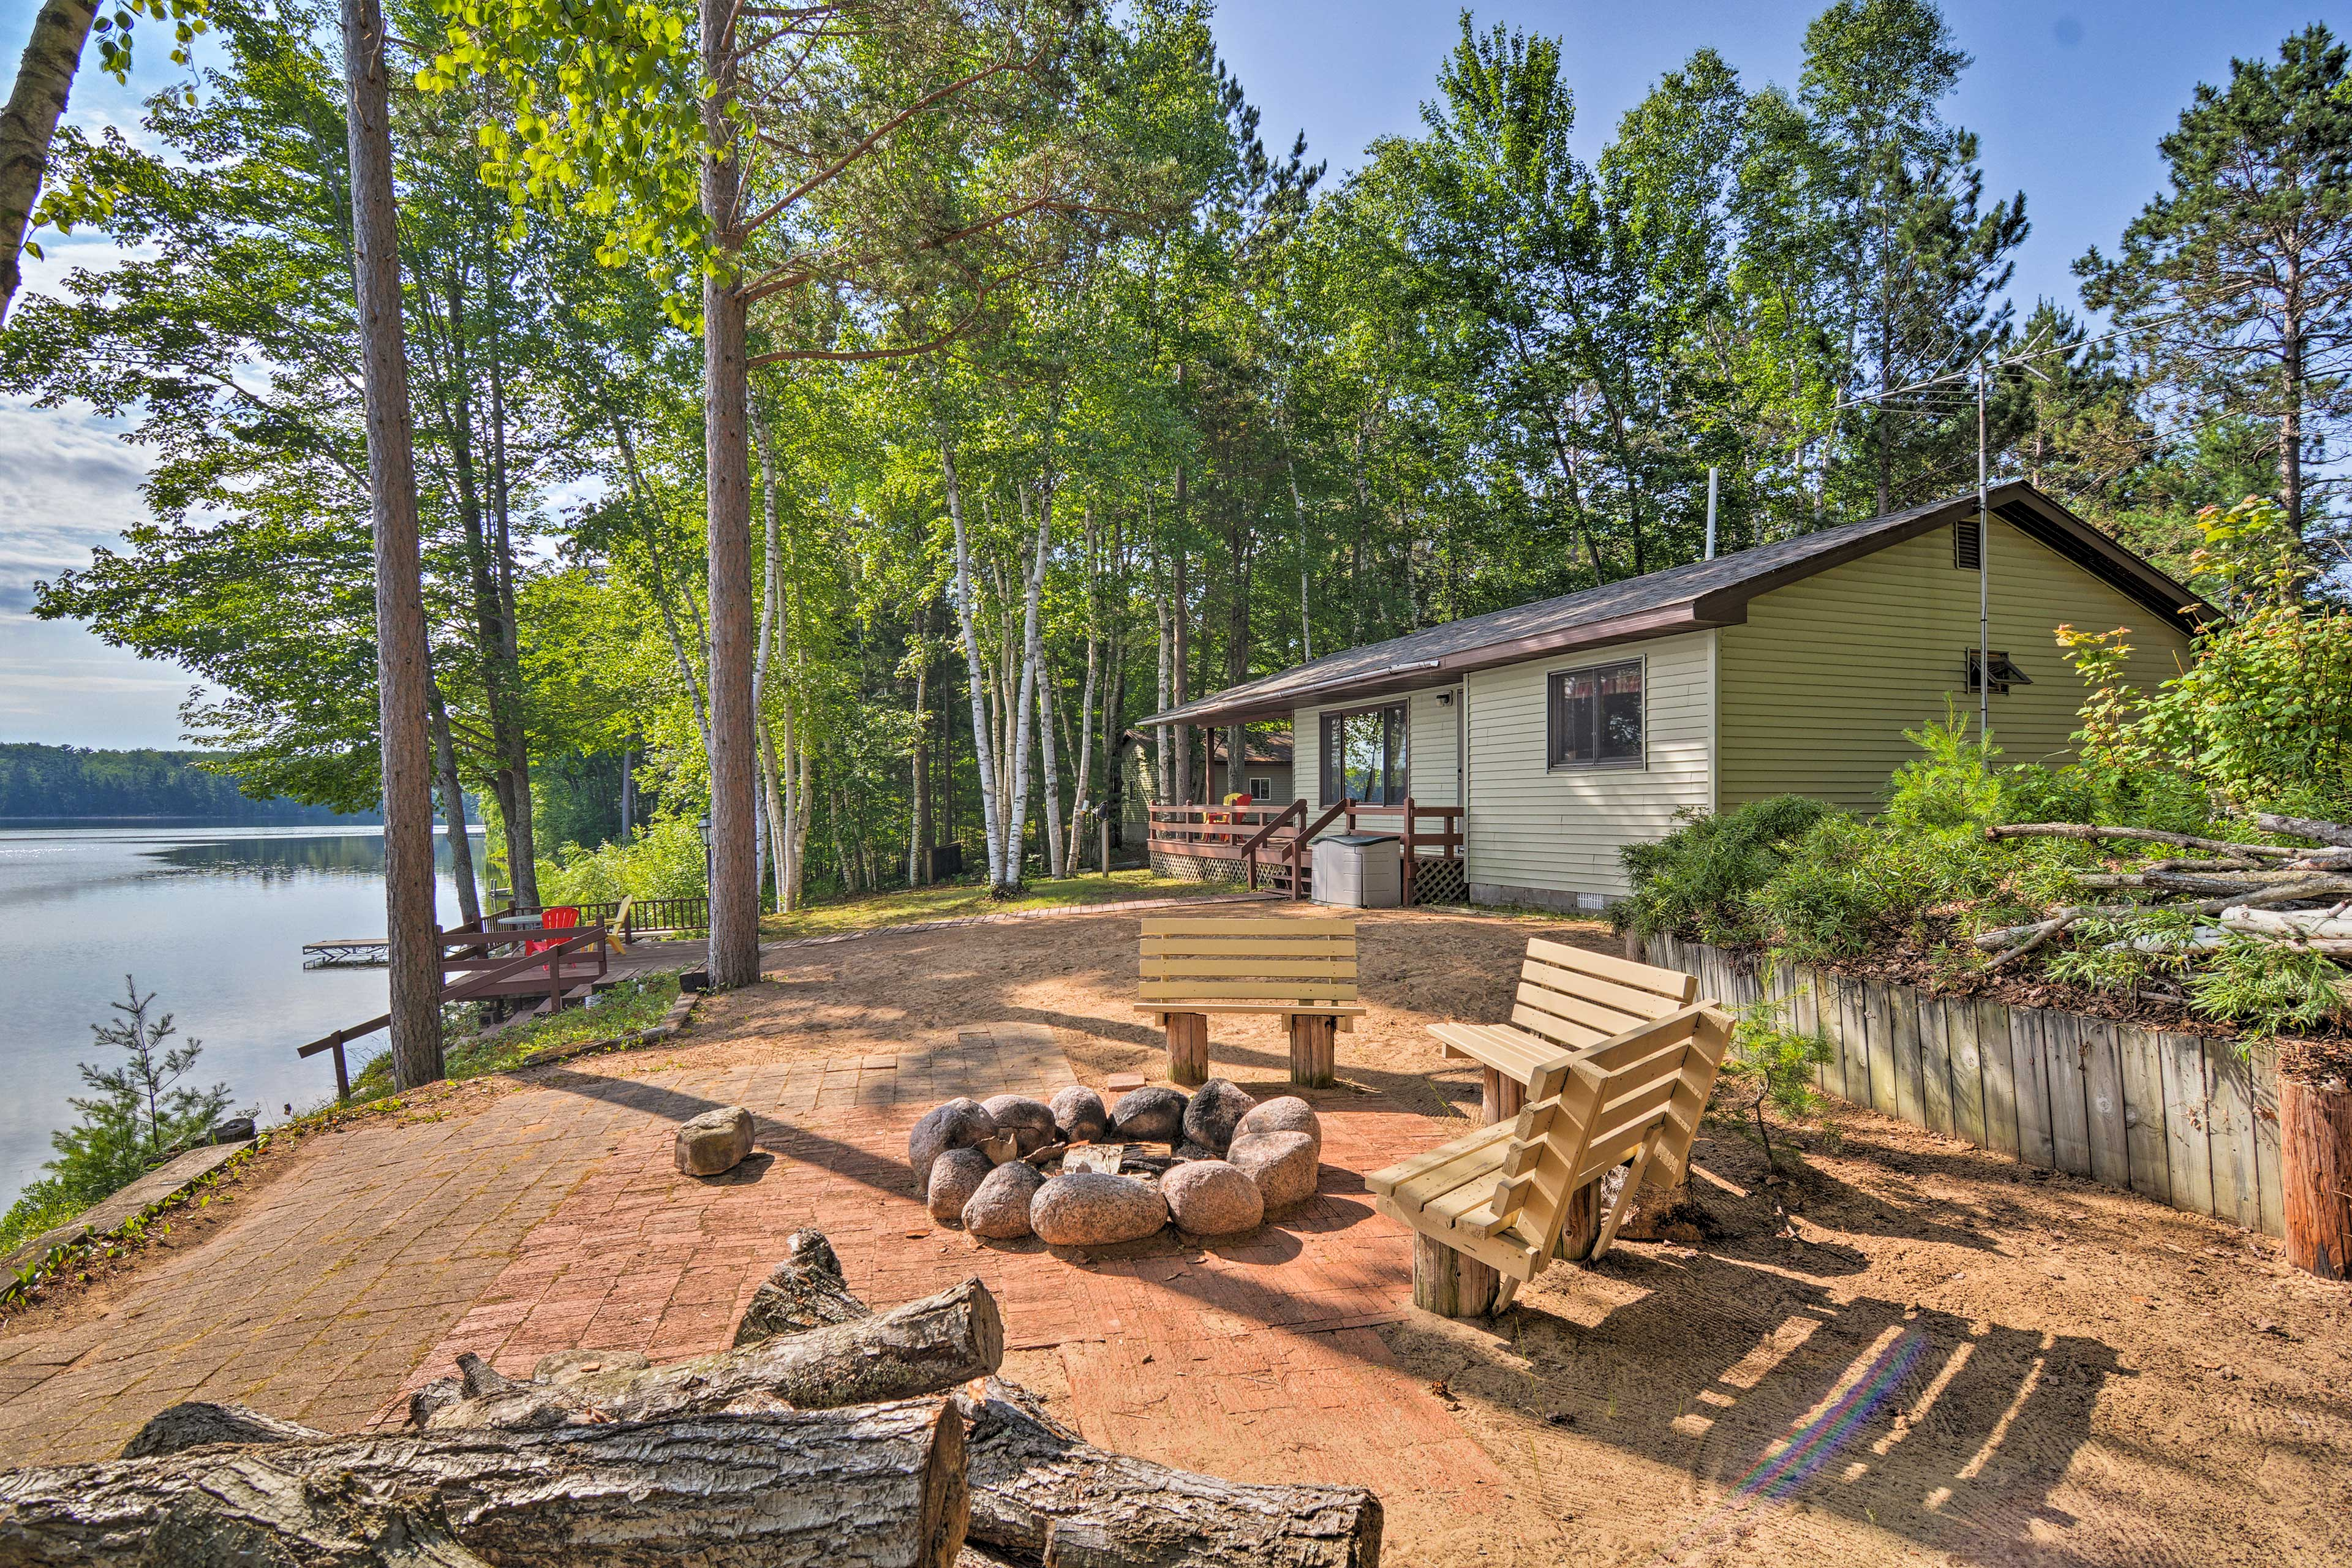 The cabin boasts 2 bedrooms and 1 bathroom with a beach, dock and fire pit.